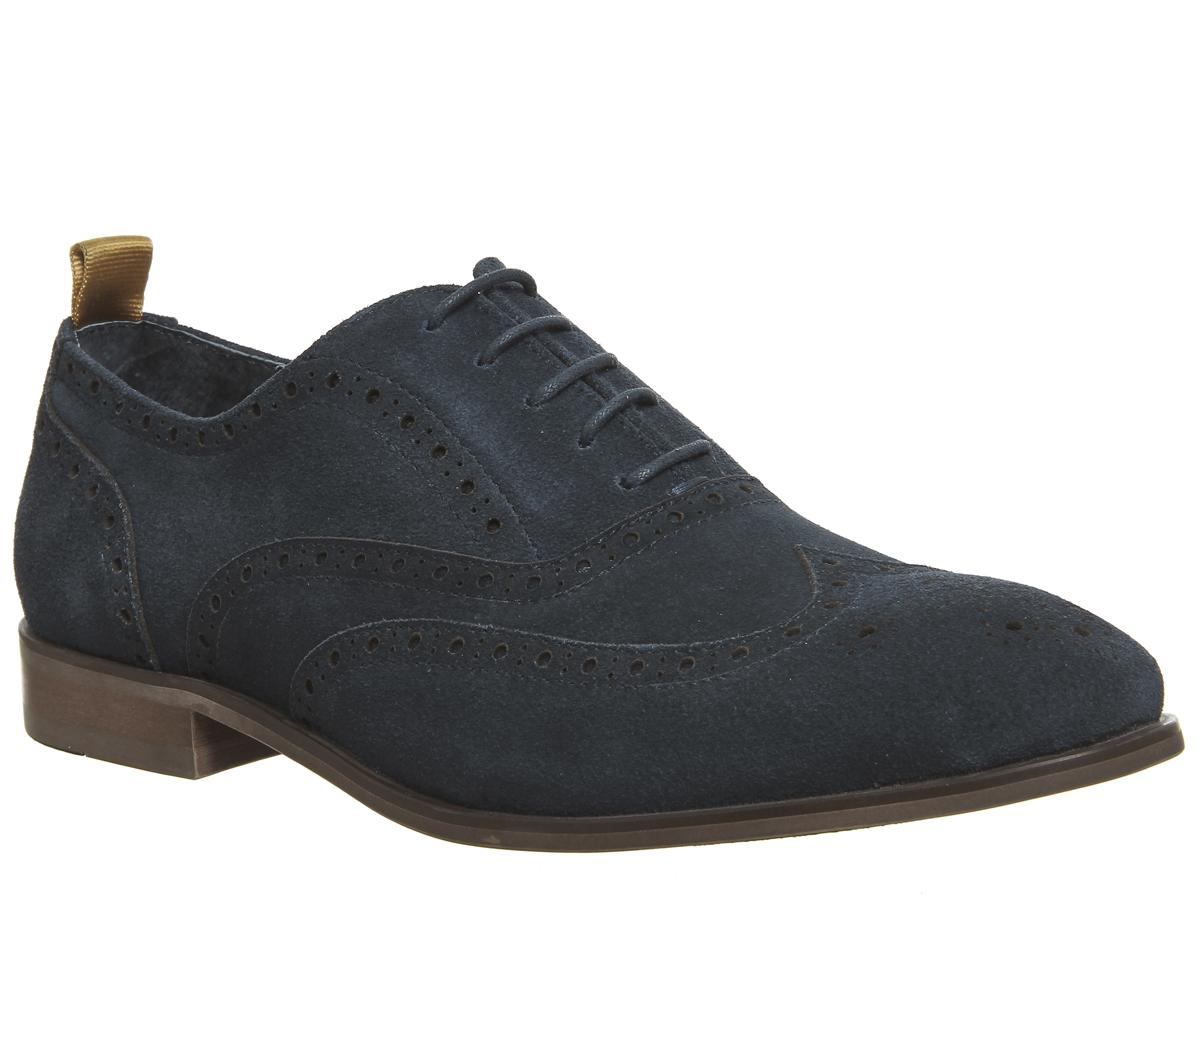 b1e660877cd1 Mens Office Flame Brogue Navy Uk Size 10 – OFFCUTS SHOES by OFFICE